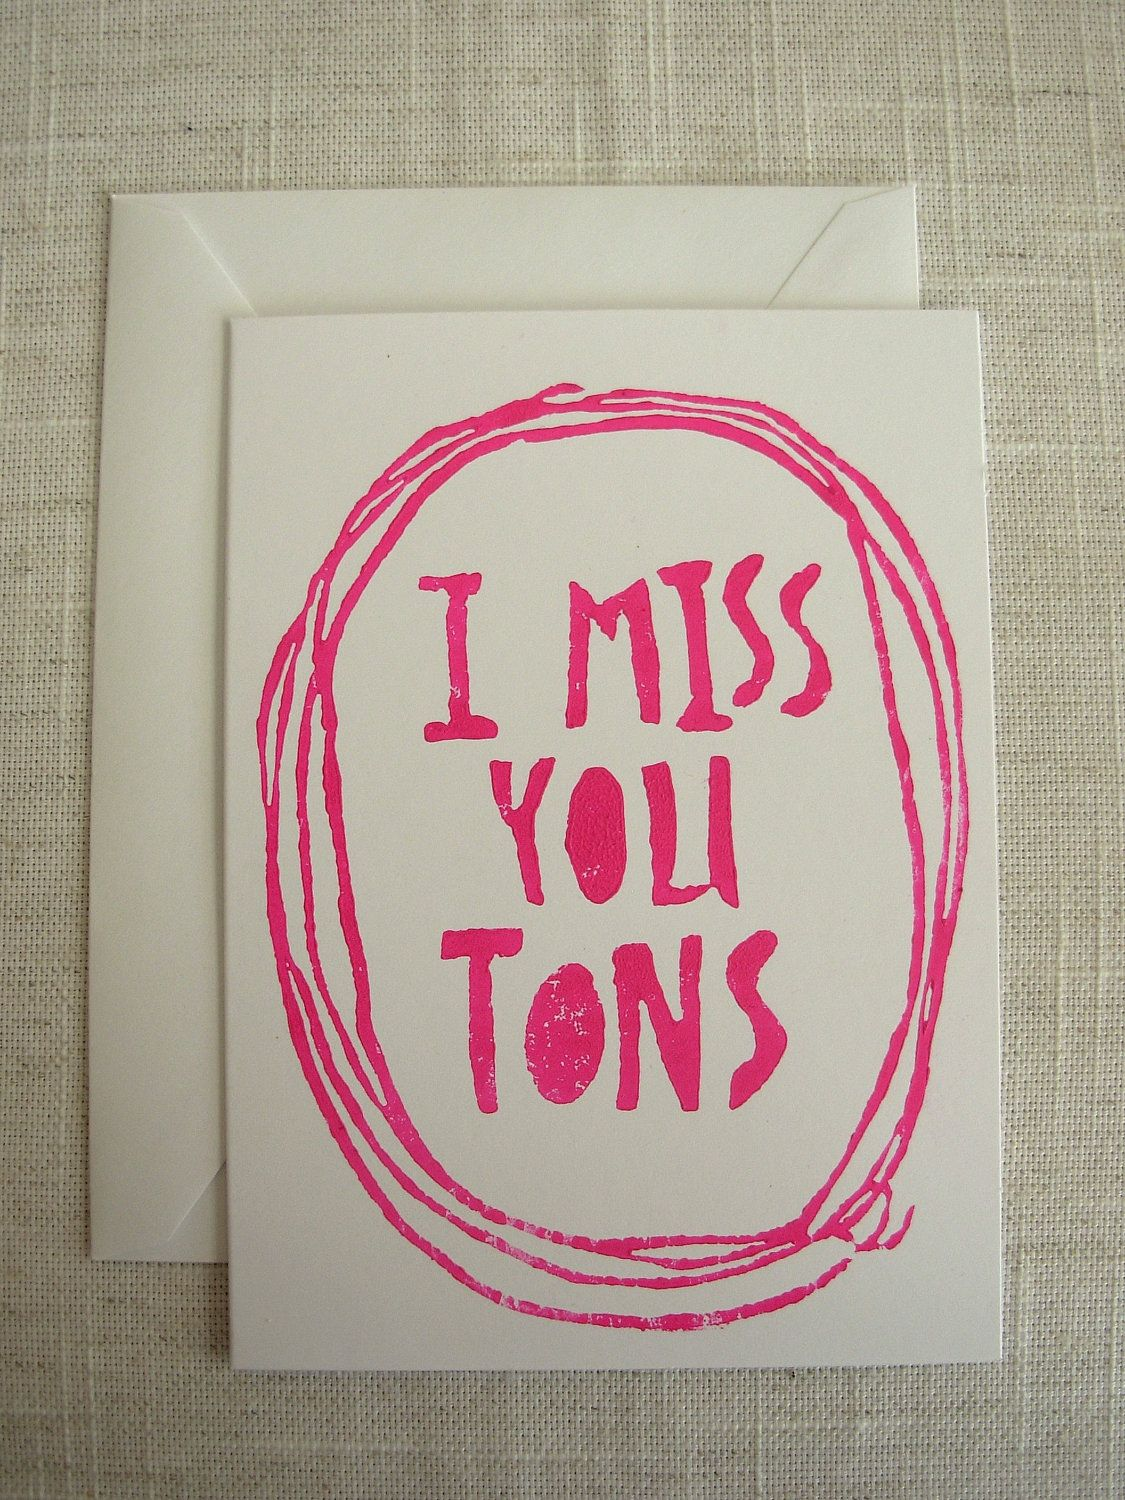 Missing you tons quotes